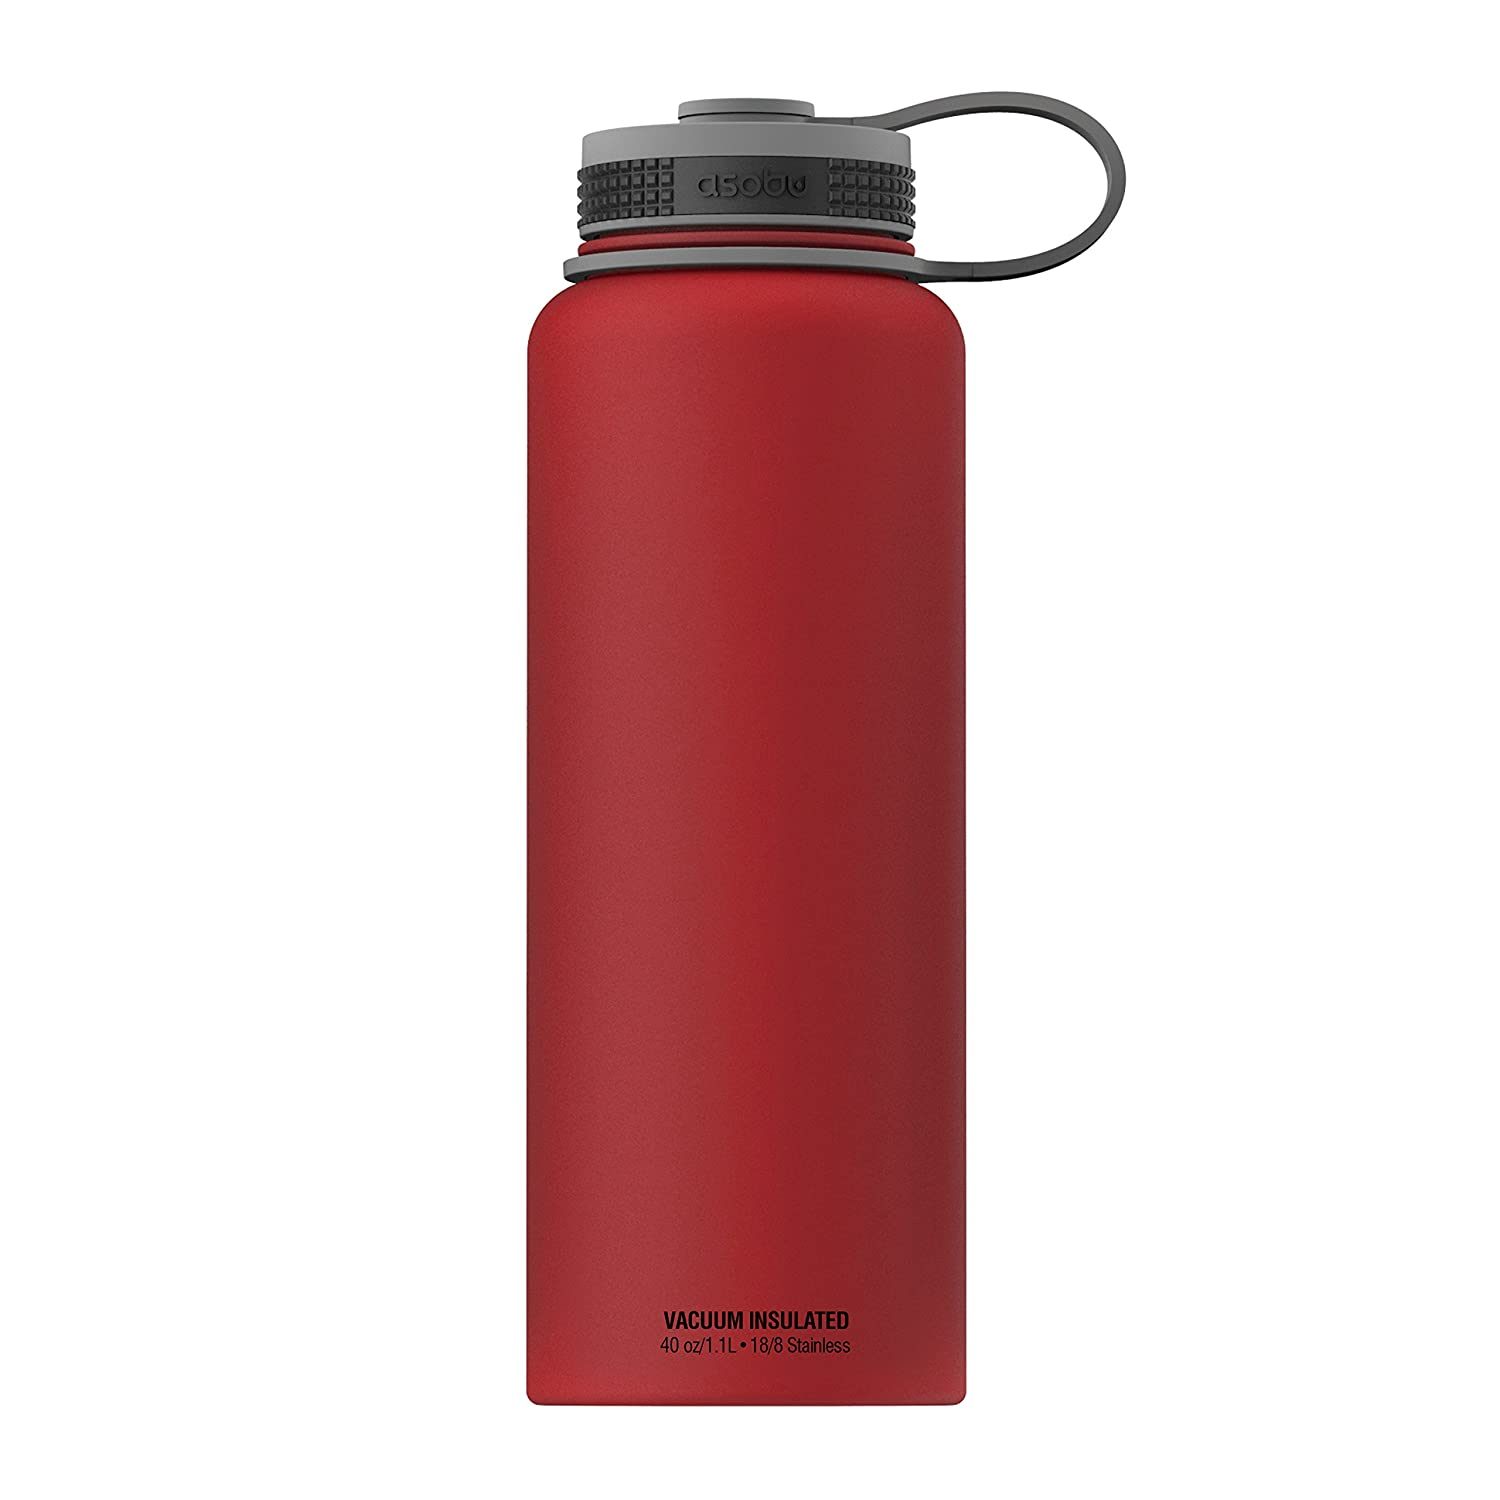 Asobu, The Mighty Flask, Wide Mouth Insulated Water Bottle, Stainless Steel, 40 oz., Black by asobu TMF1-9548